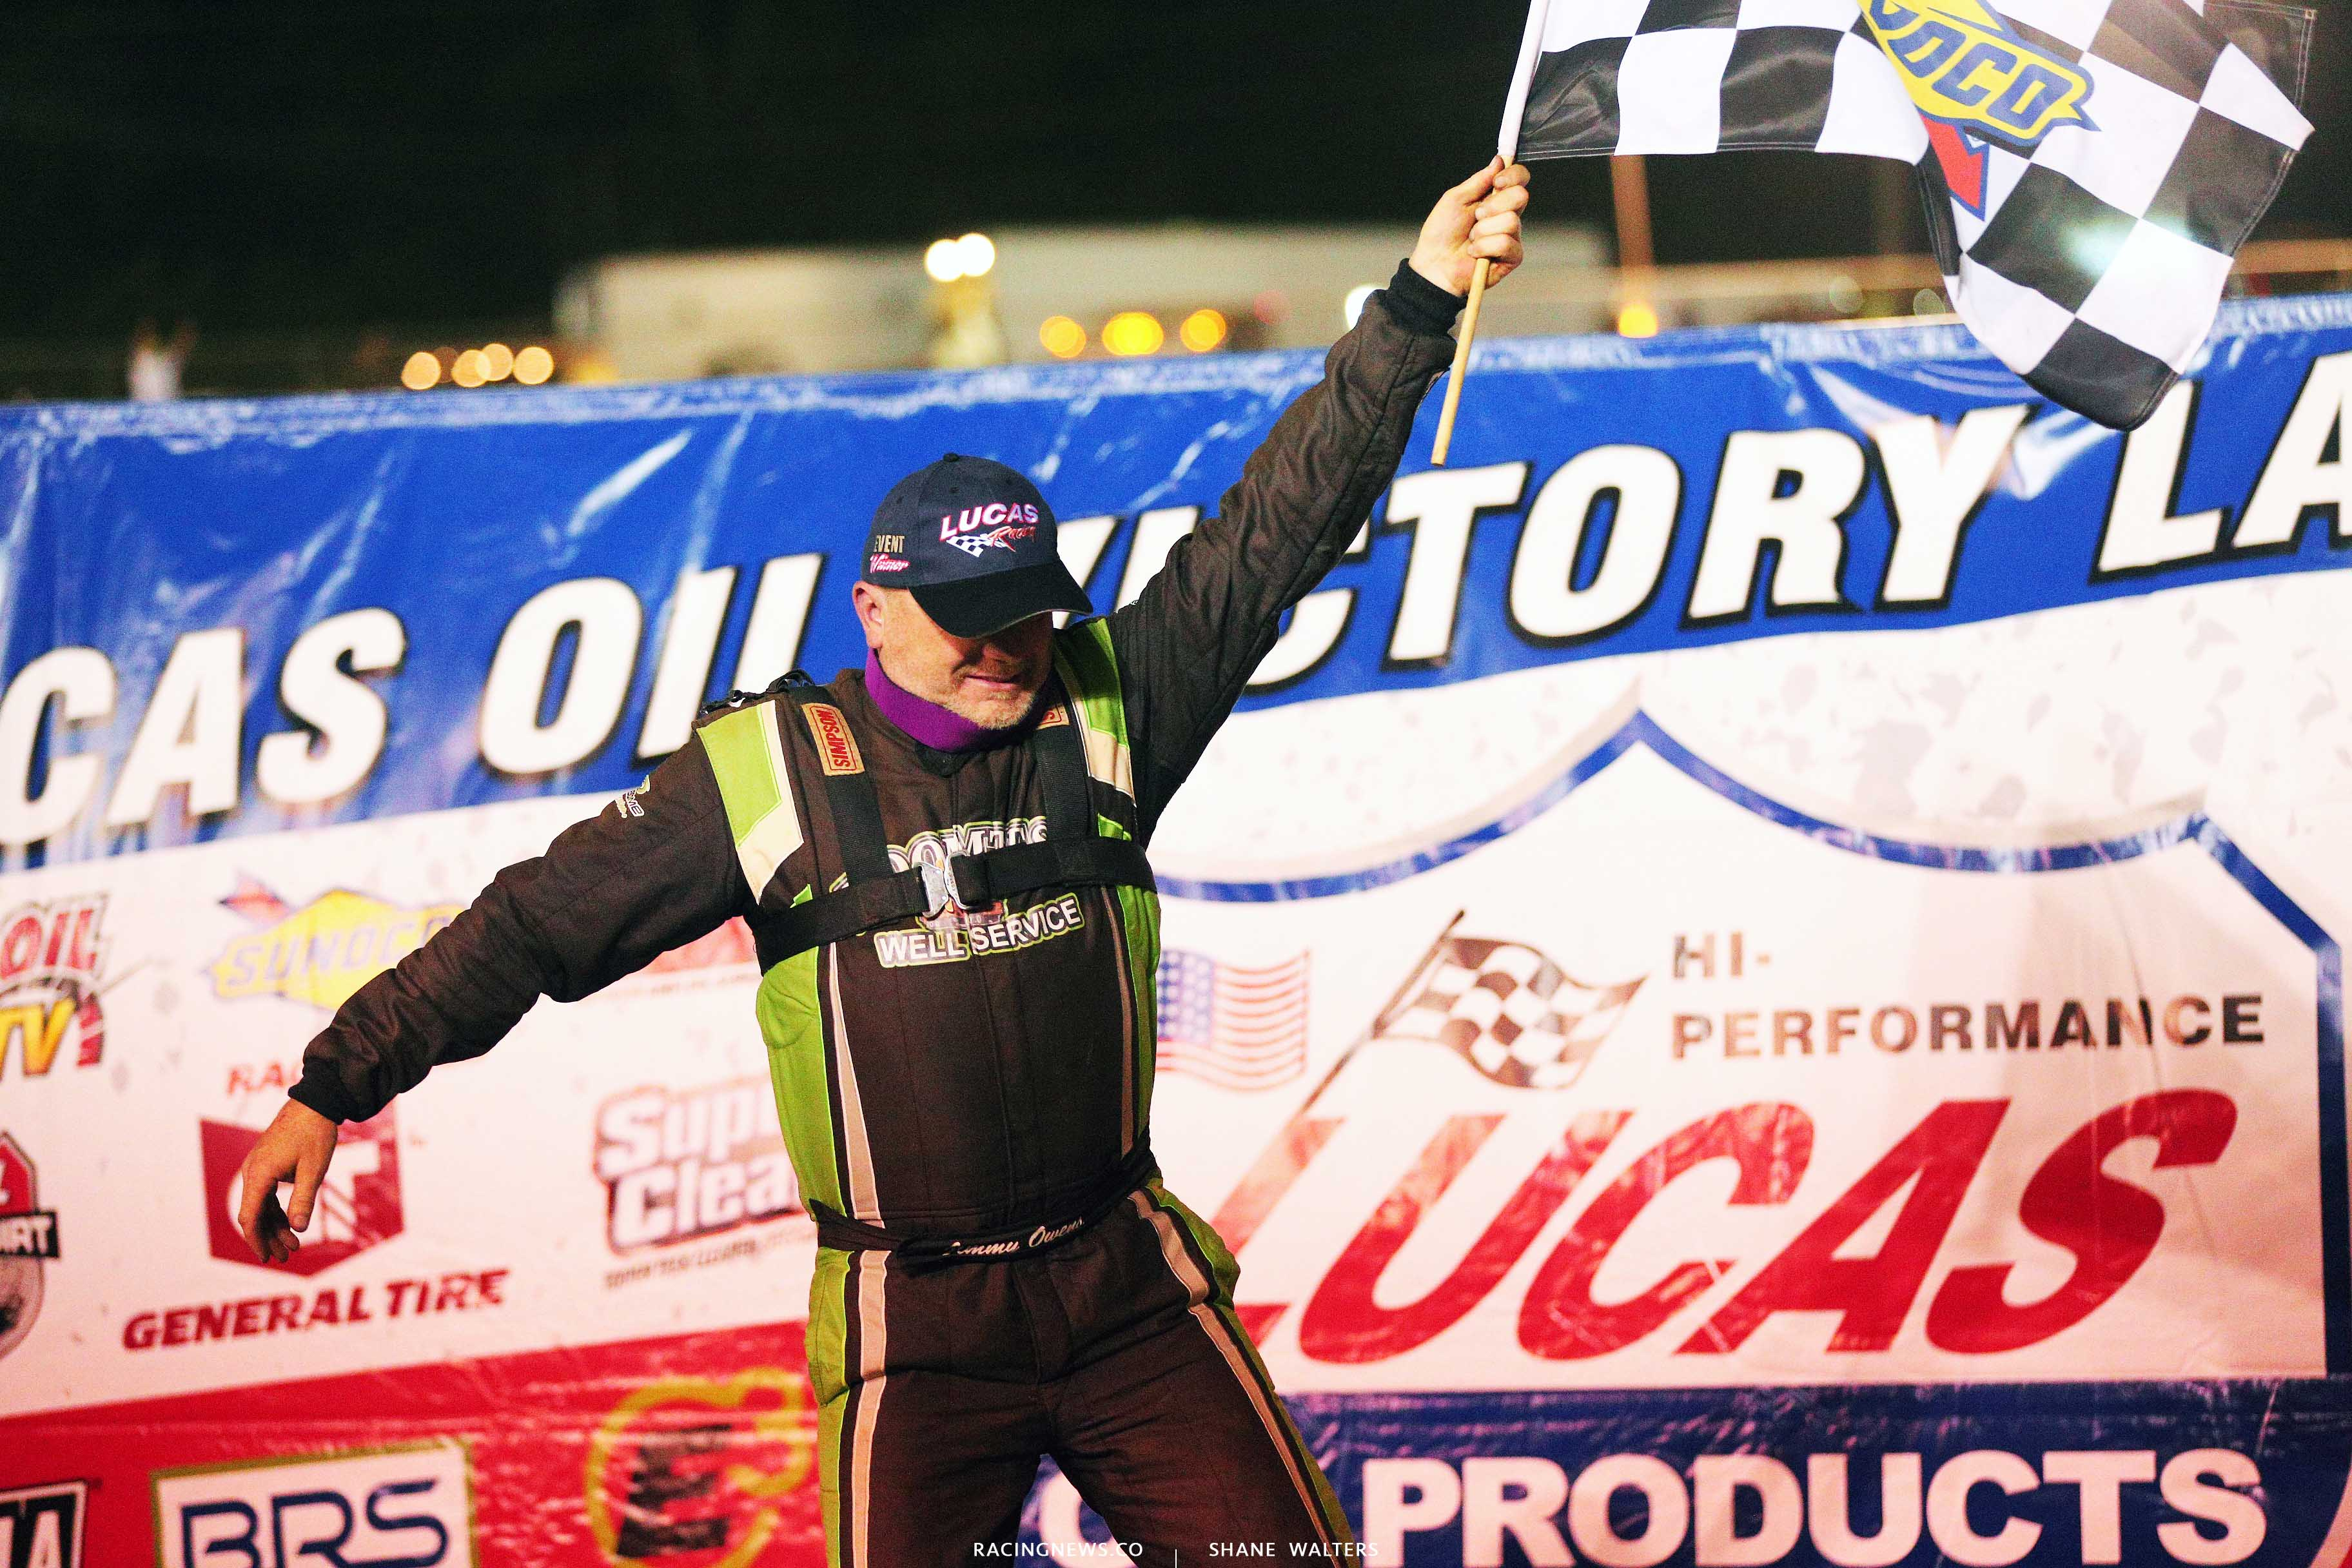 Jimmy Owens in Lucas Oil Victory Lane at 411 Motor Speedway 7482